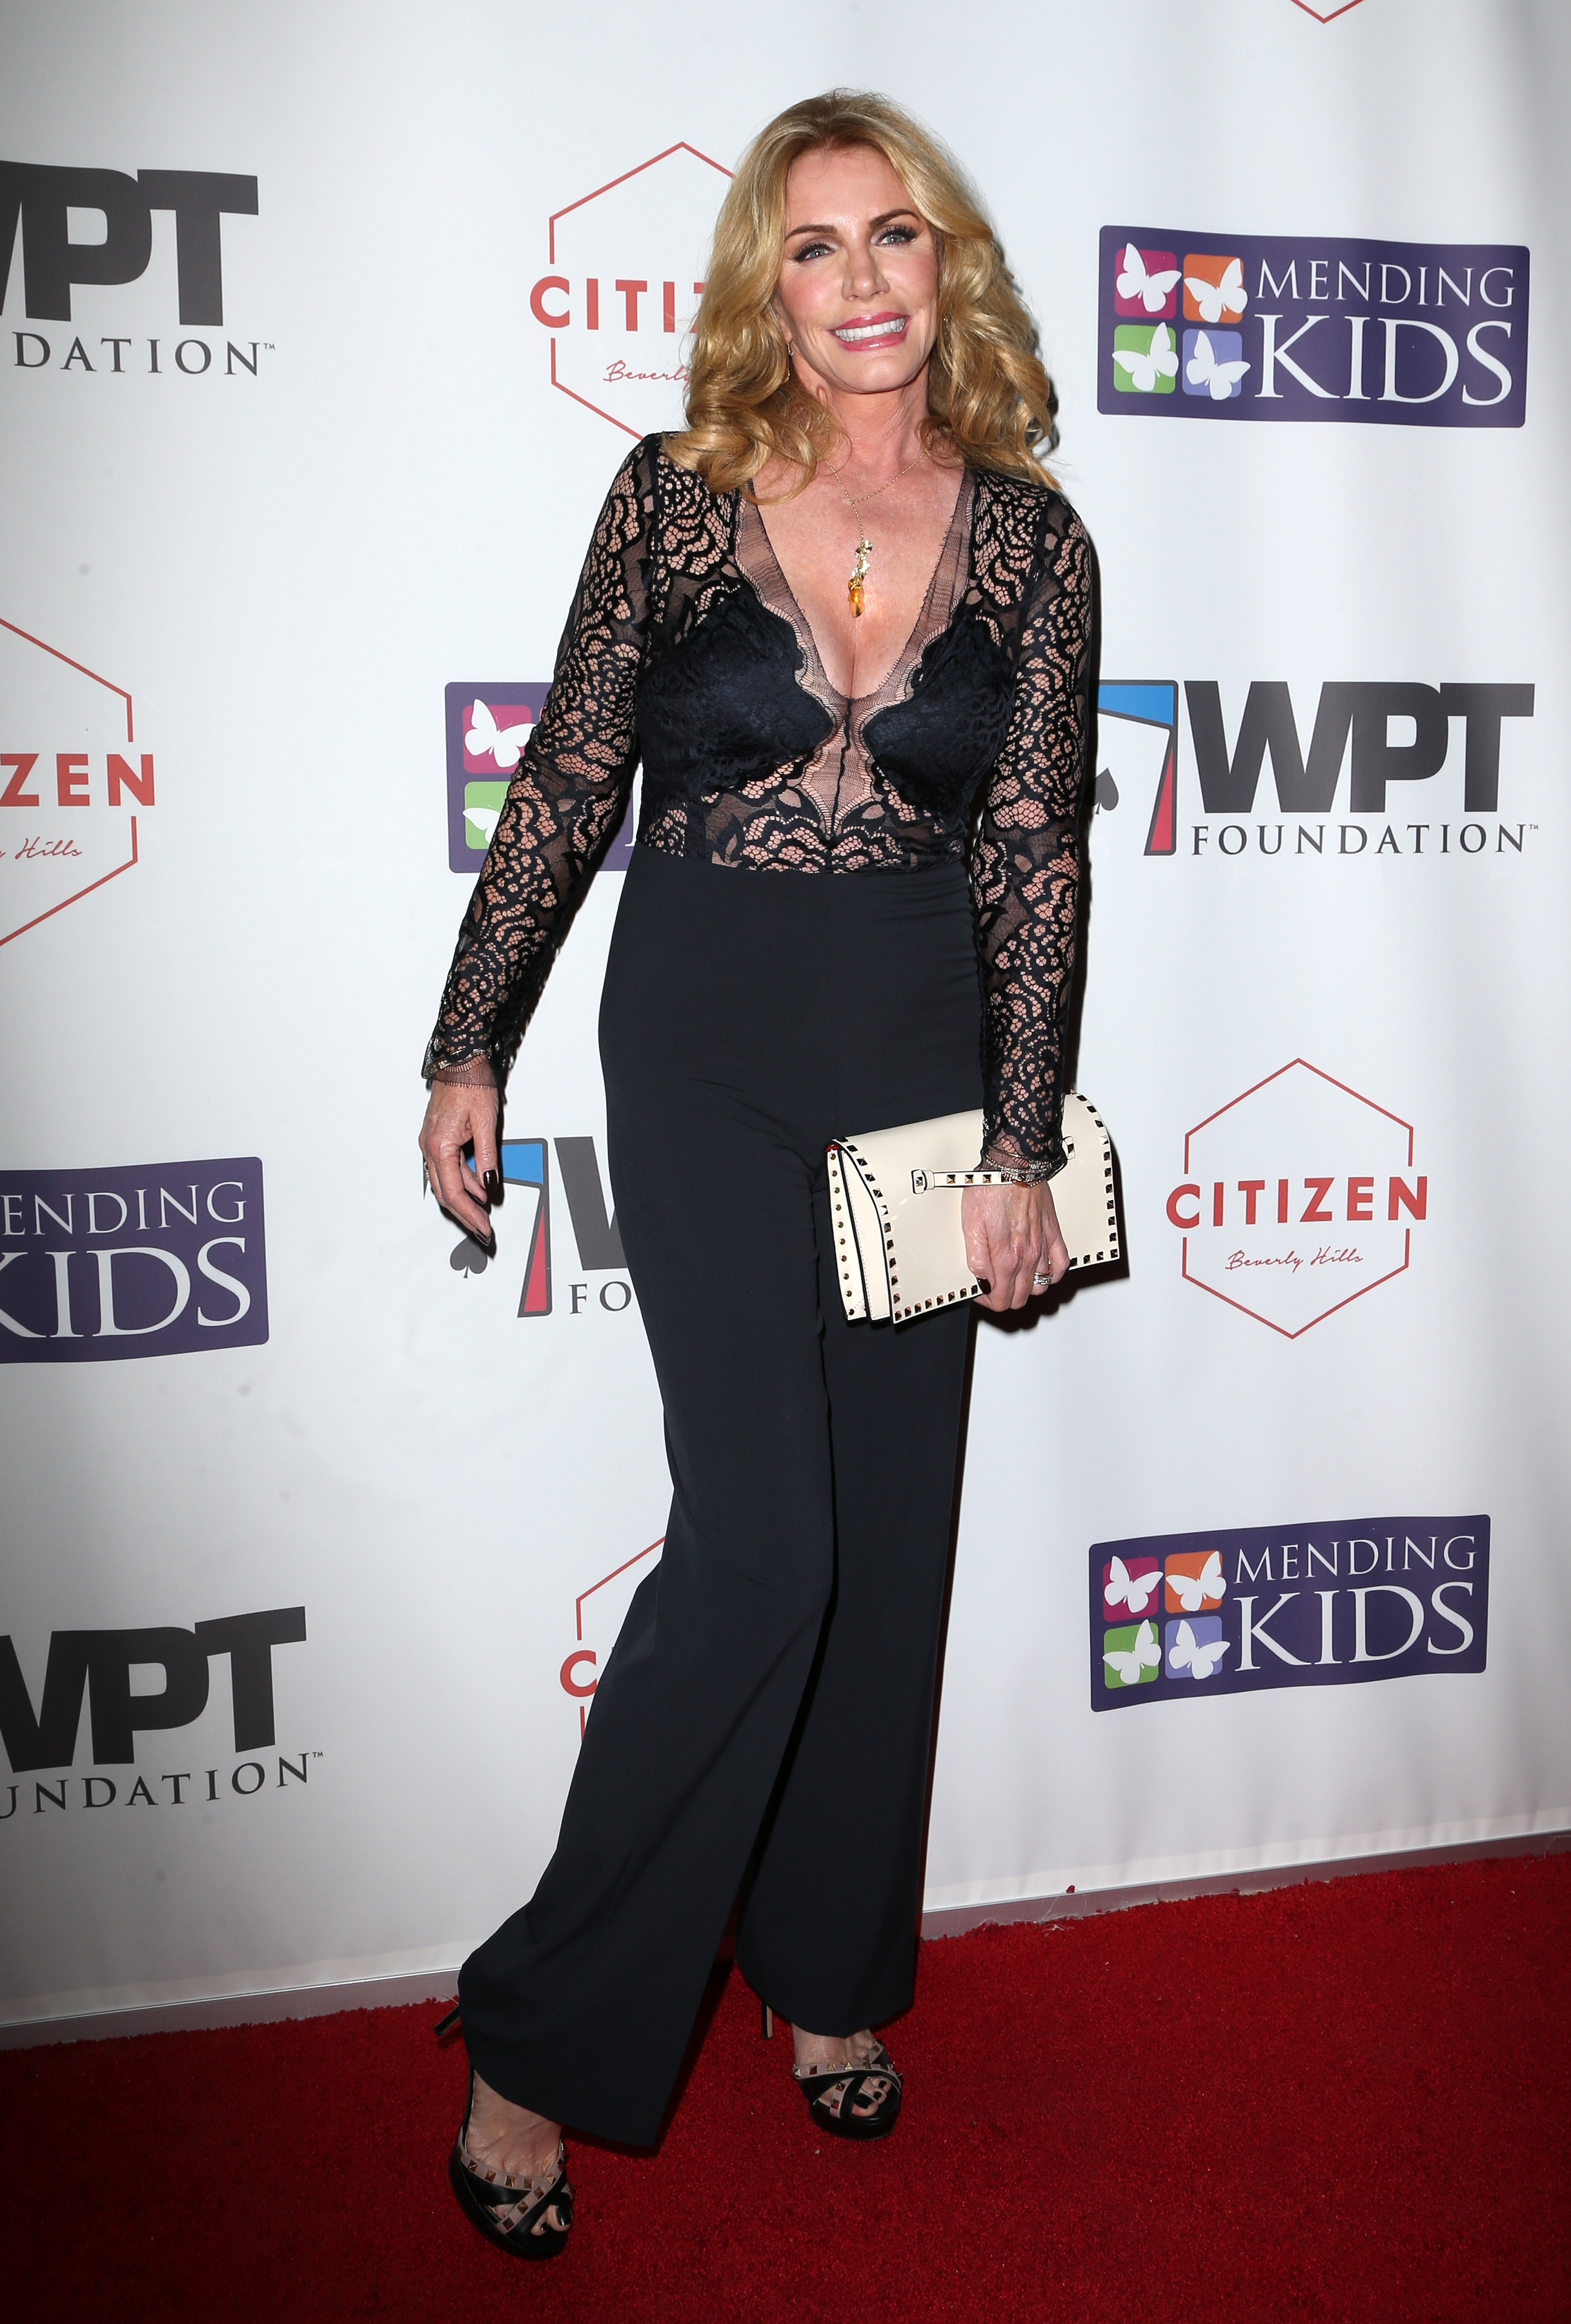 Shannon Tweed on WPT Shows